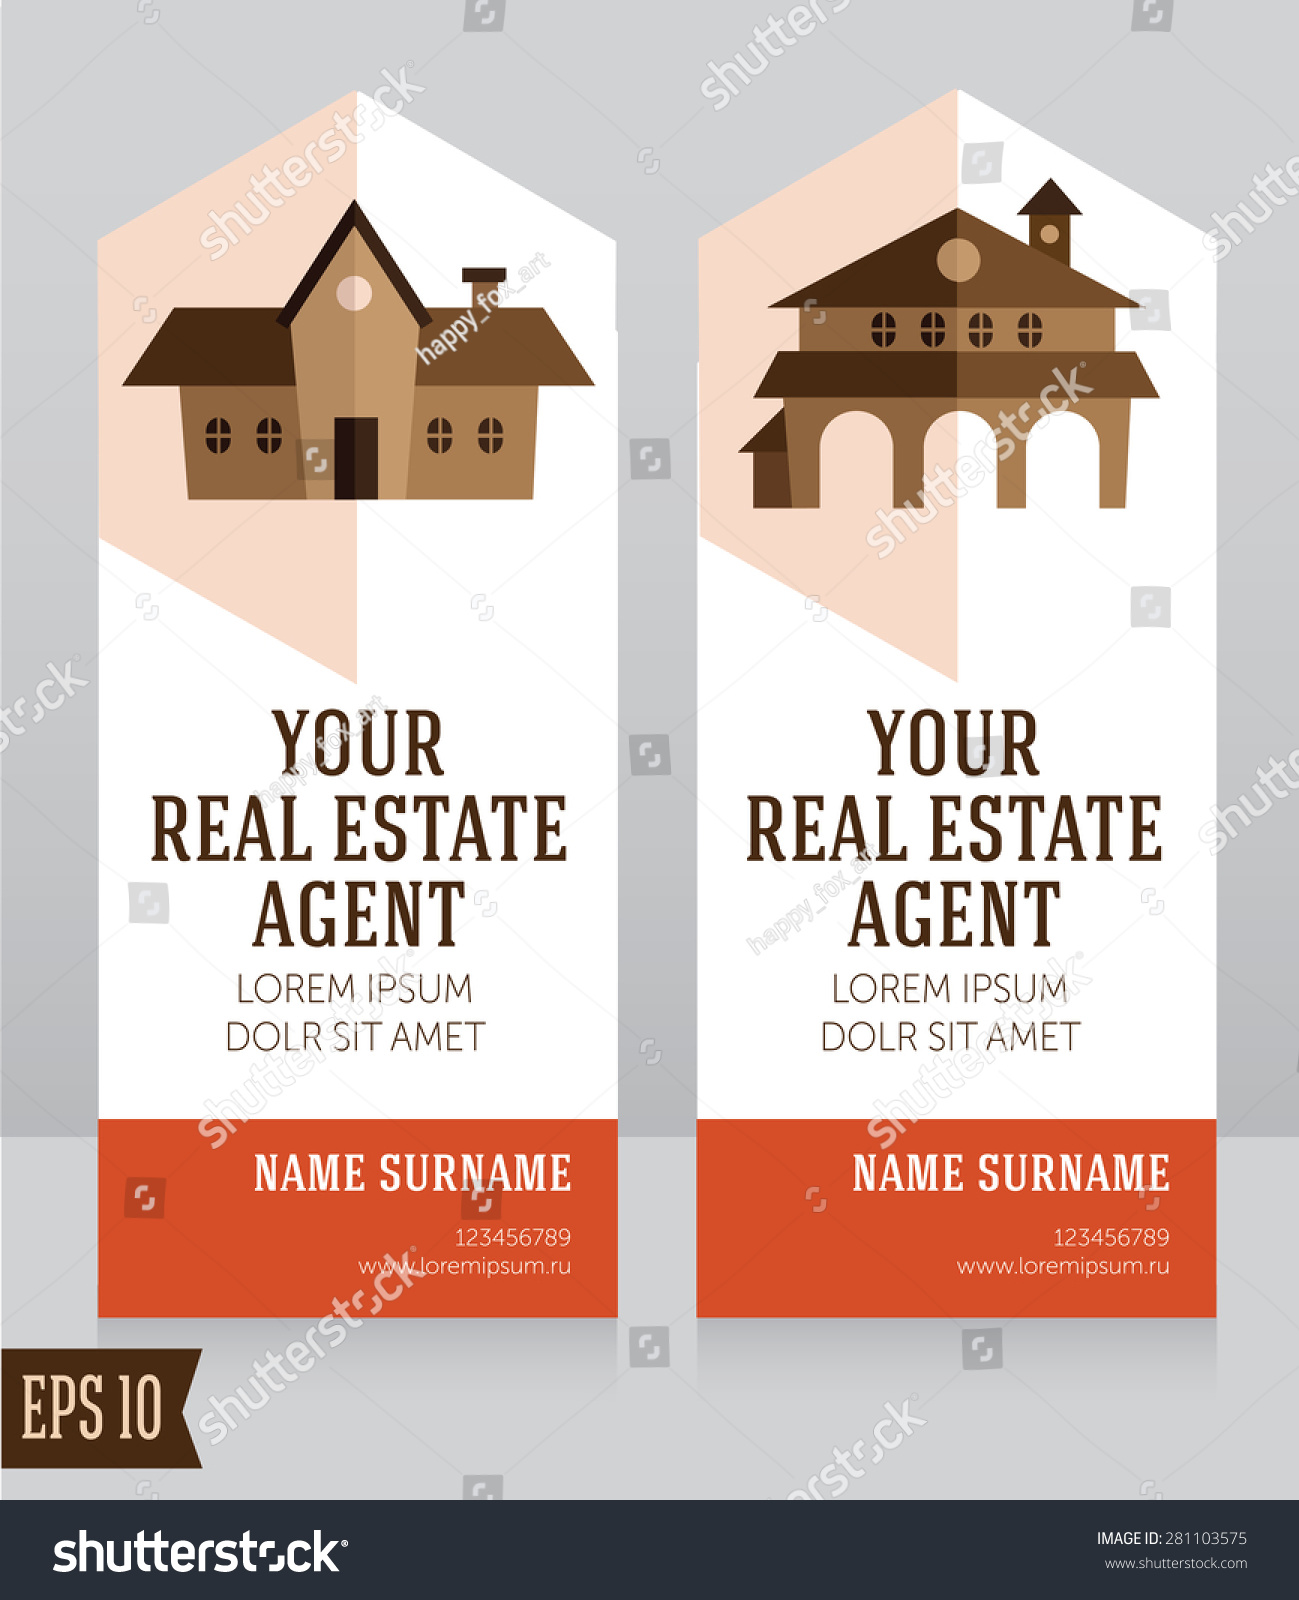 Design Template Real Estate Agent Business Stock Photo (Photo ...